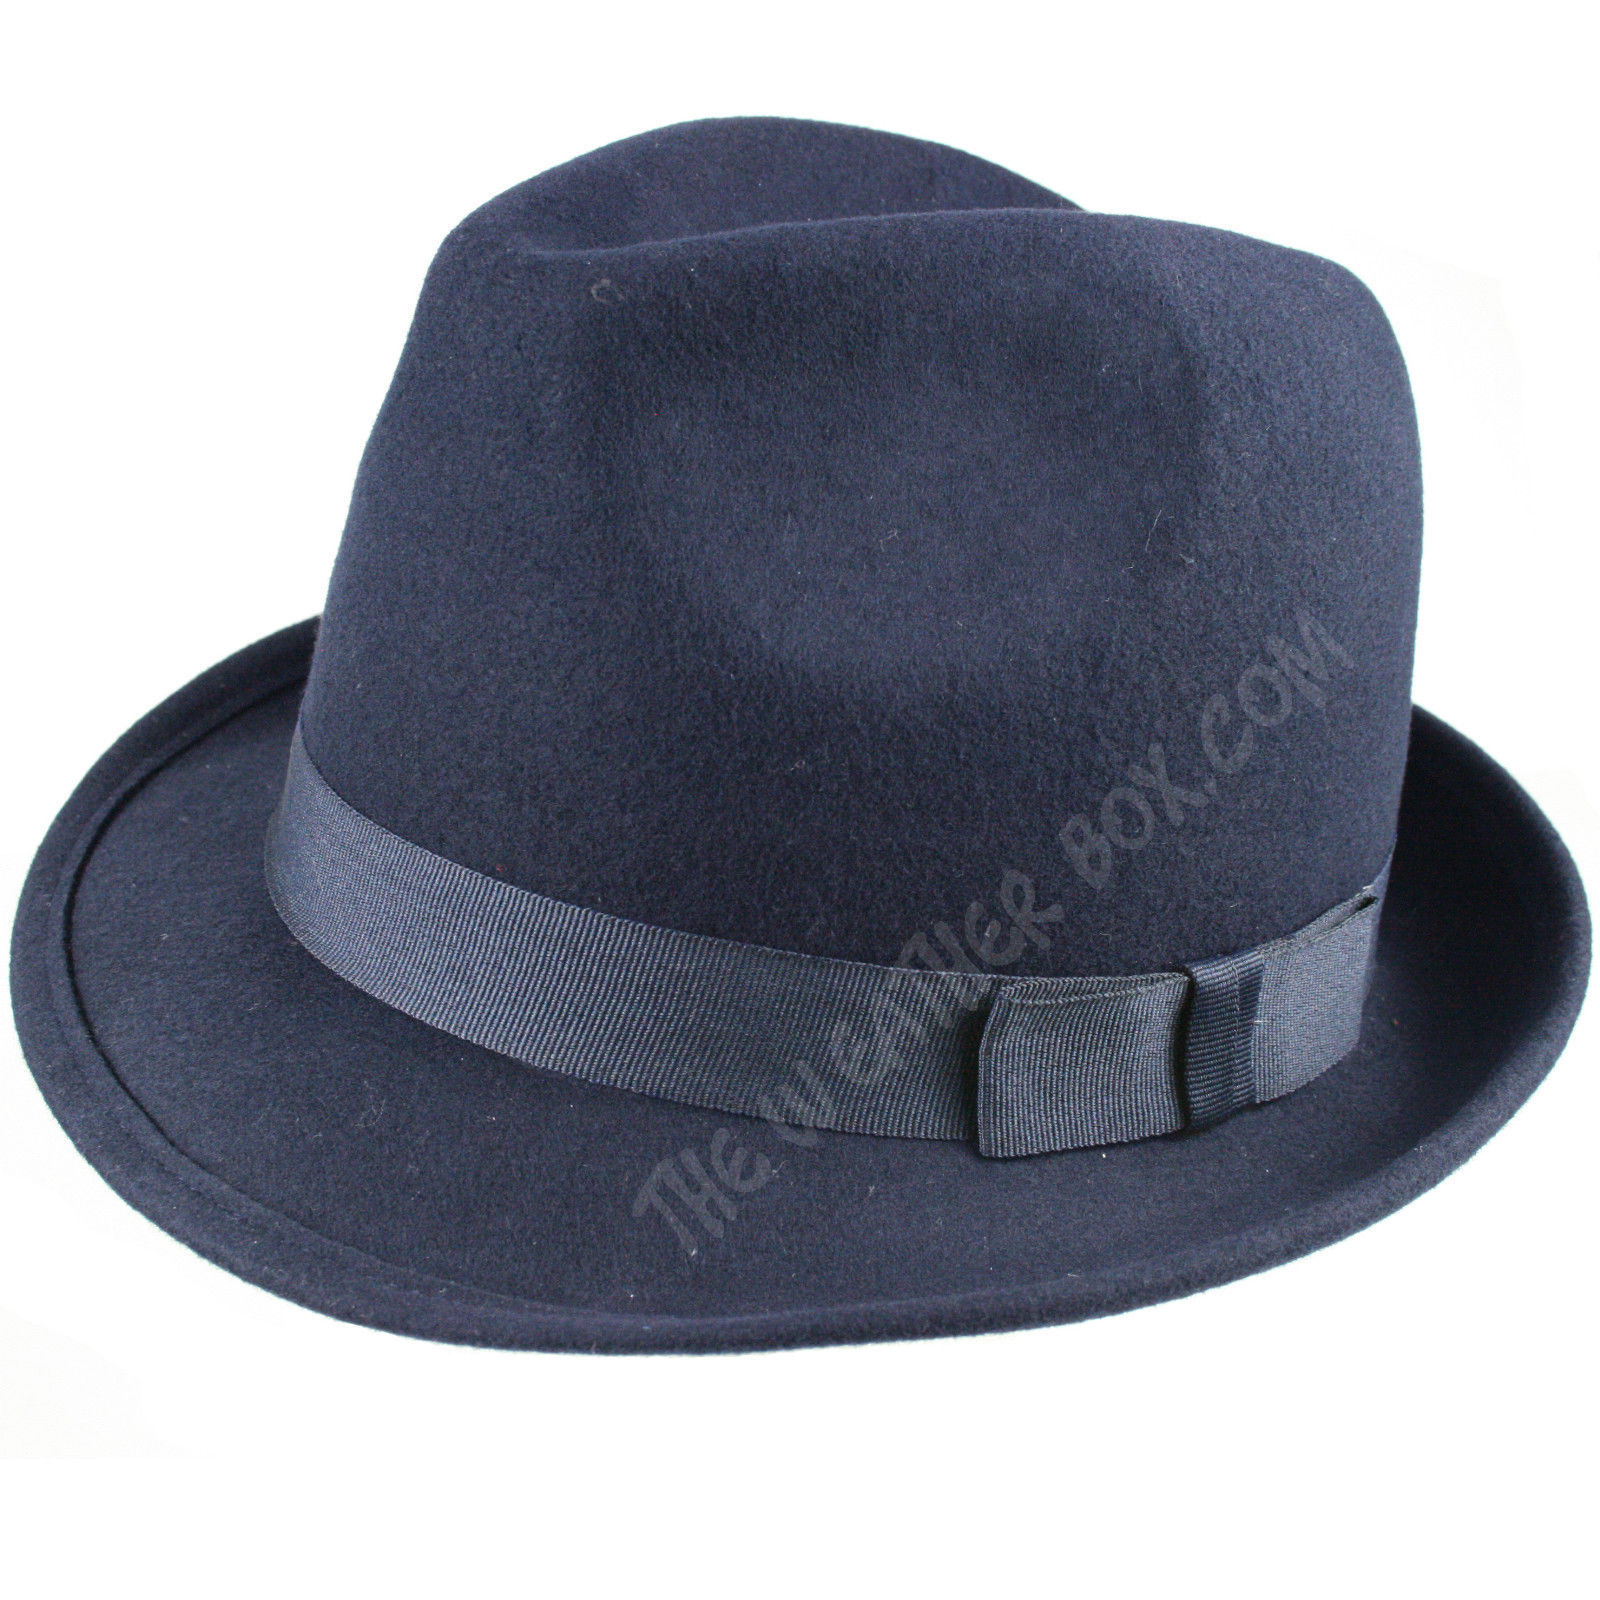 Shop eBay for great deals on Men's Fedora/Trilby Straw Hats. You'll find new or used products in Men's Fedora/Trilby Straw Hats on eBay. Free shipping on selected items.